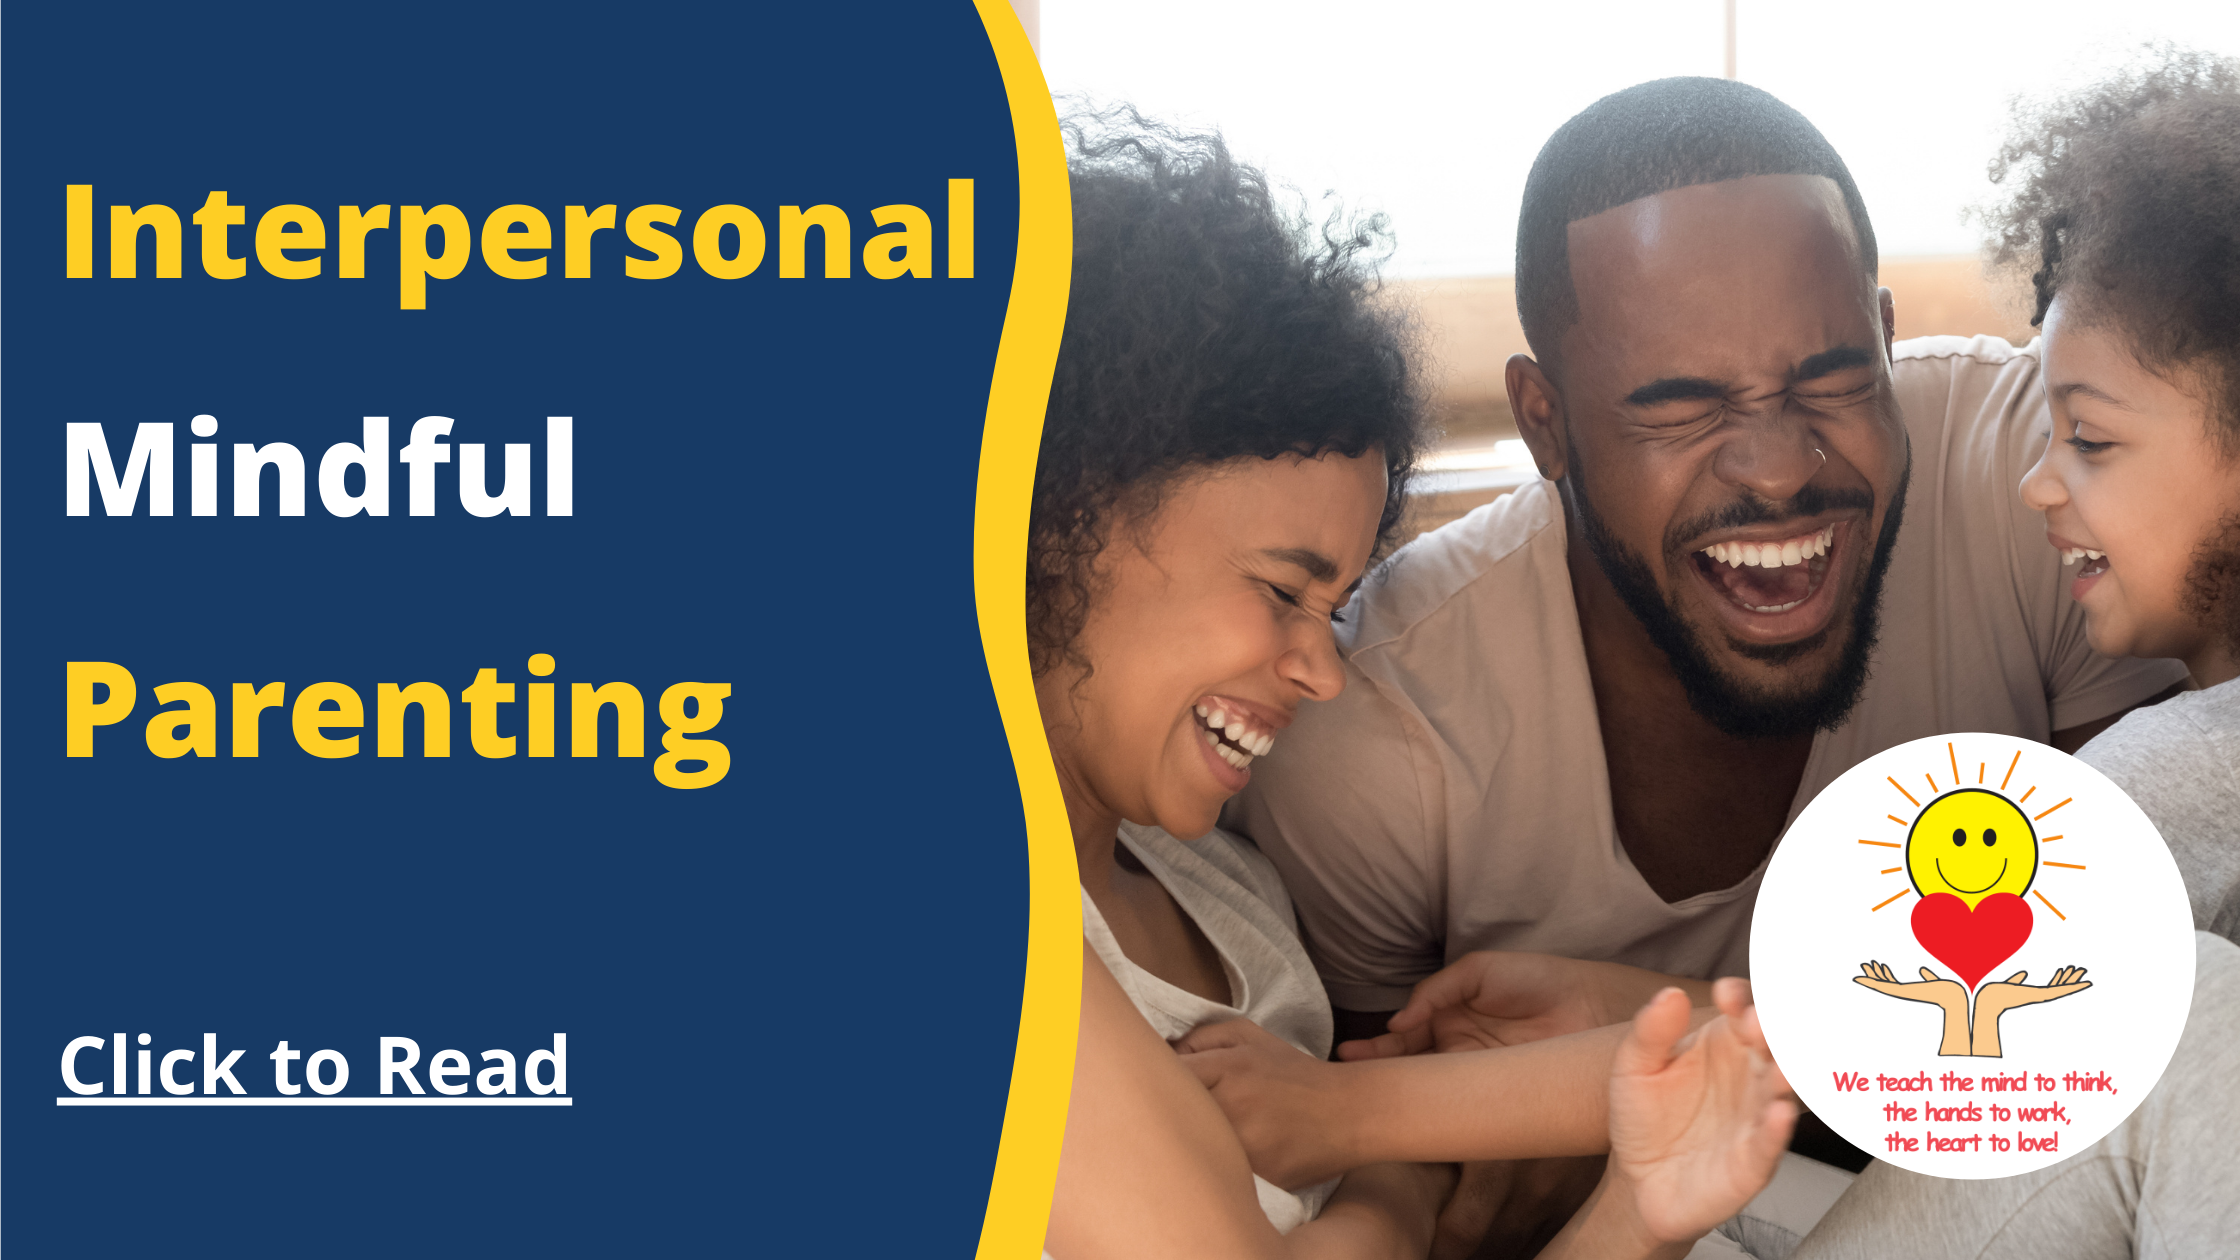 Interpersonal Mindful Parenting